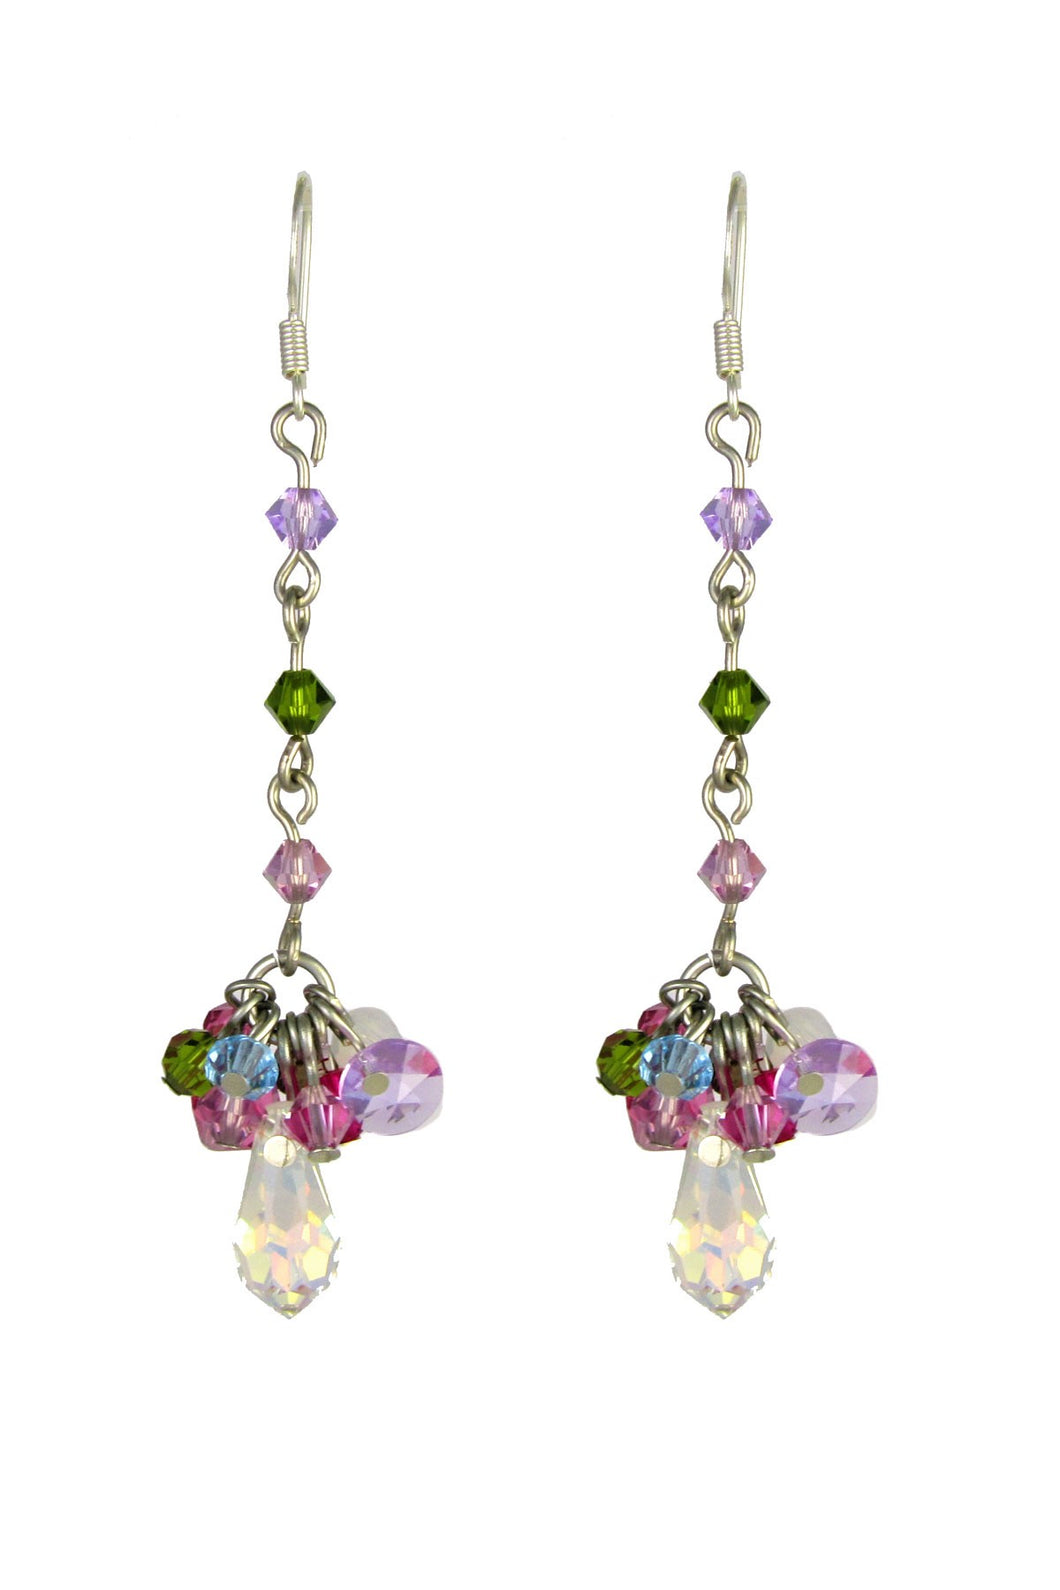 SALE - Ana Swarovski Crystals Earrings